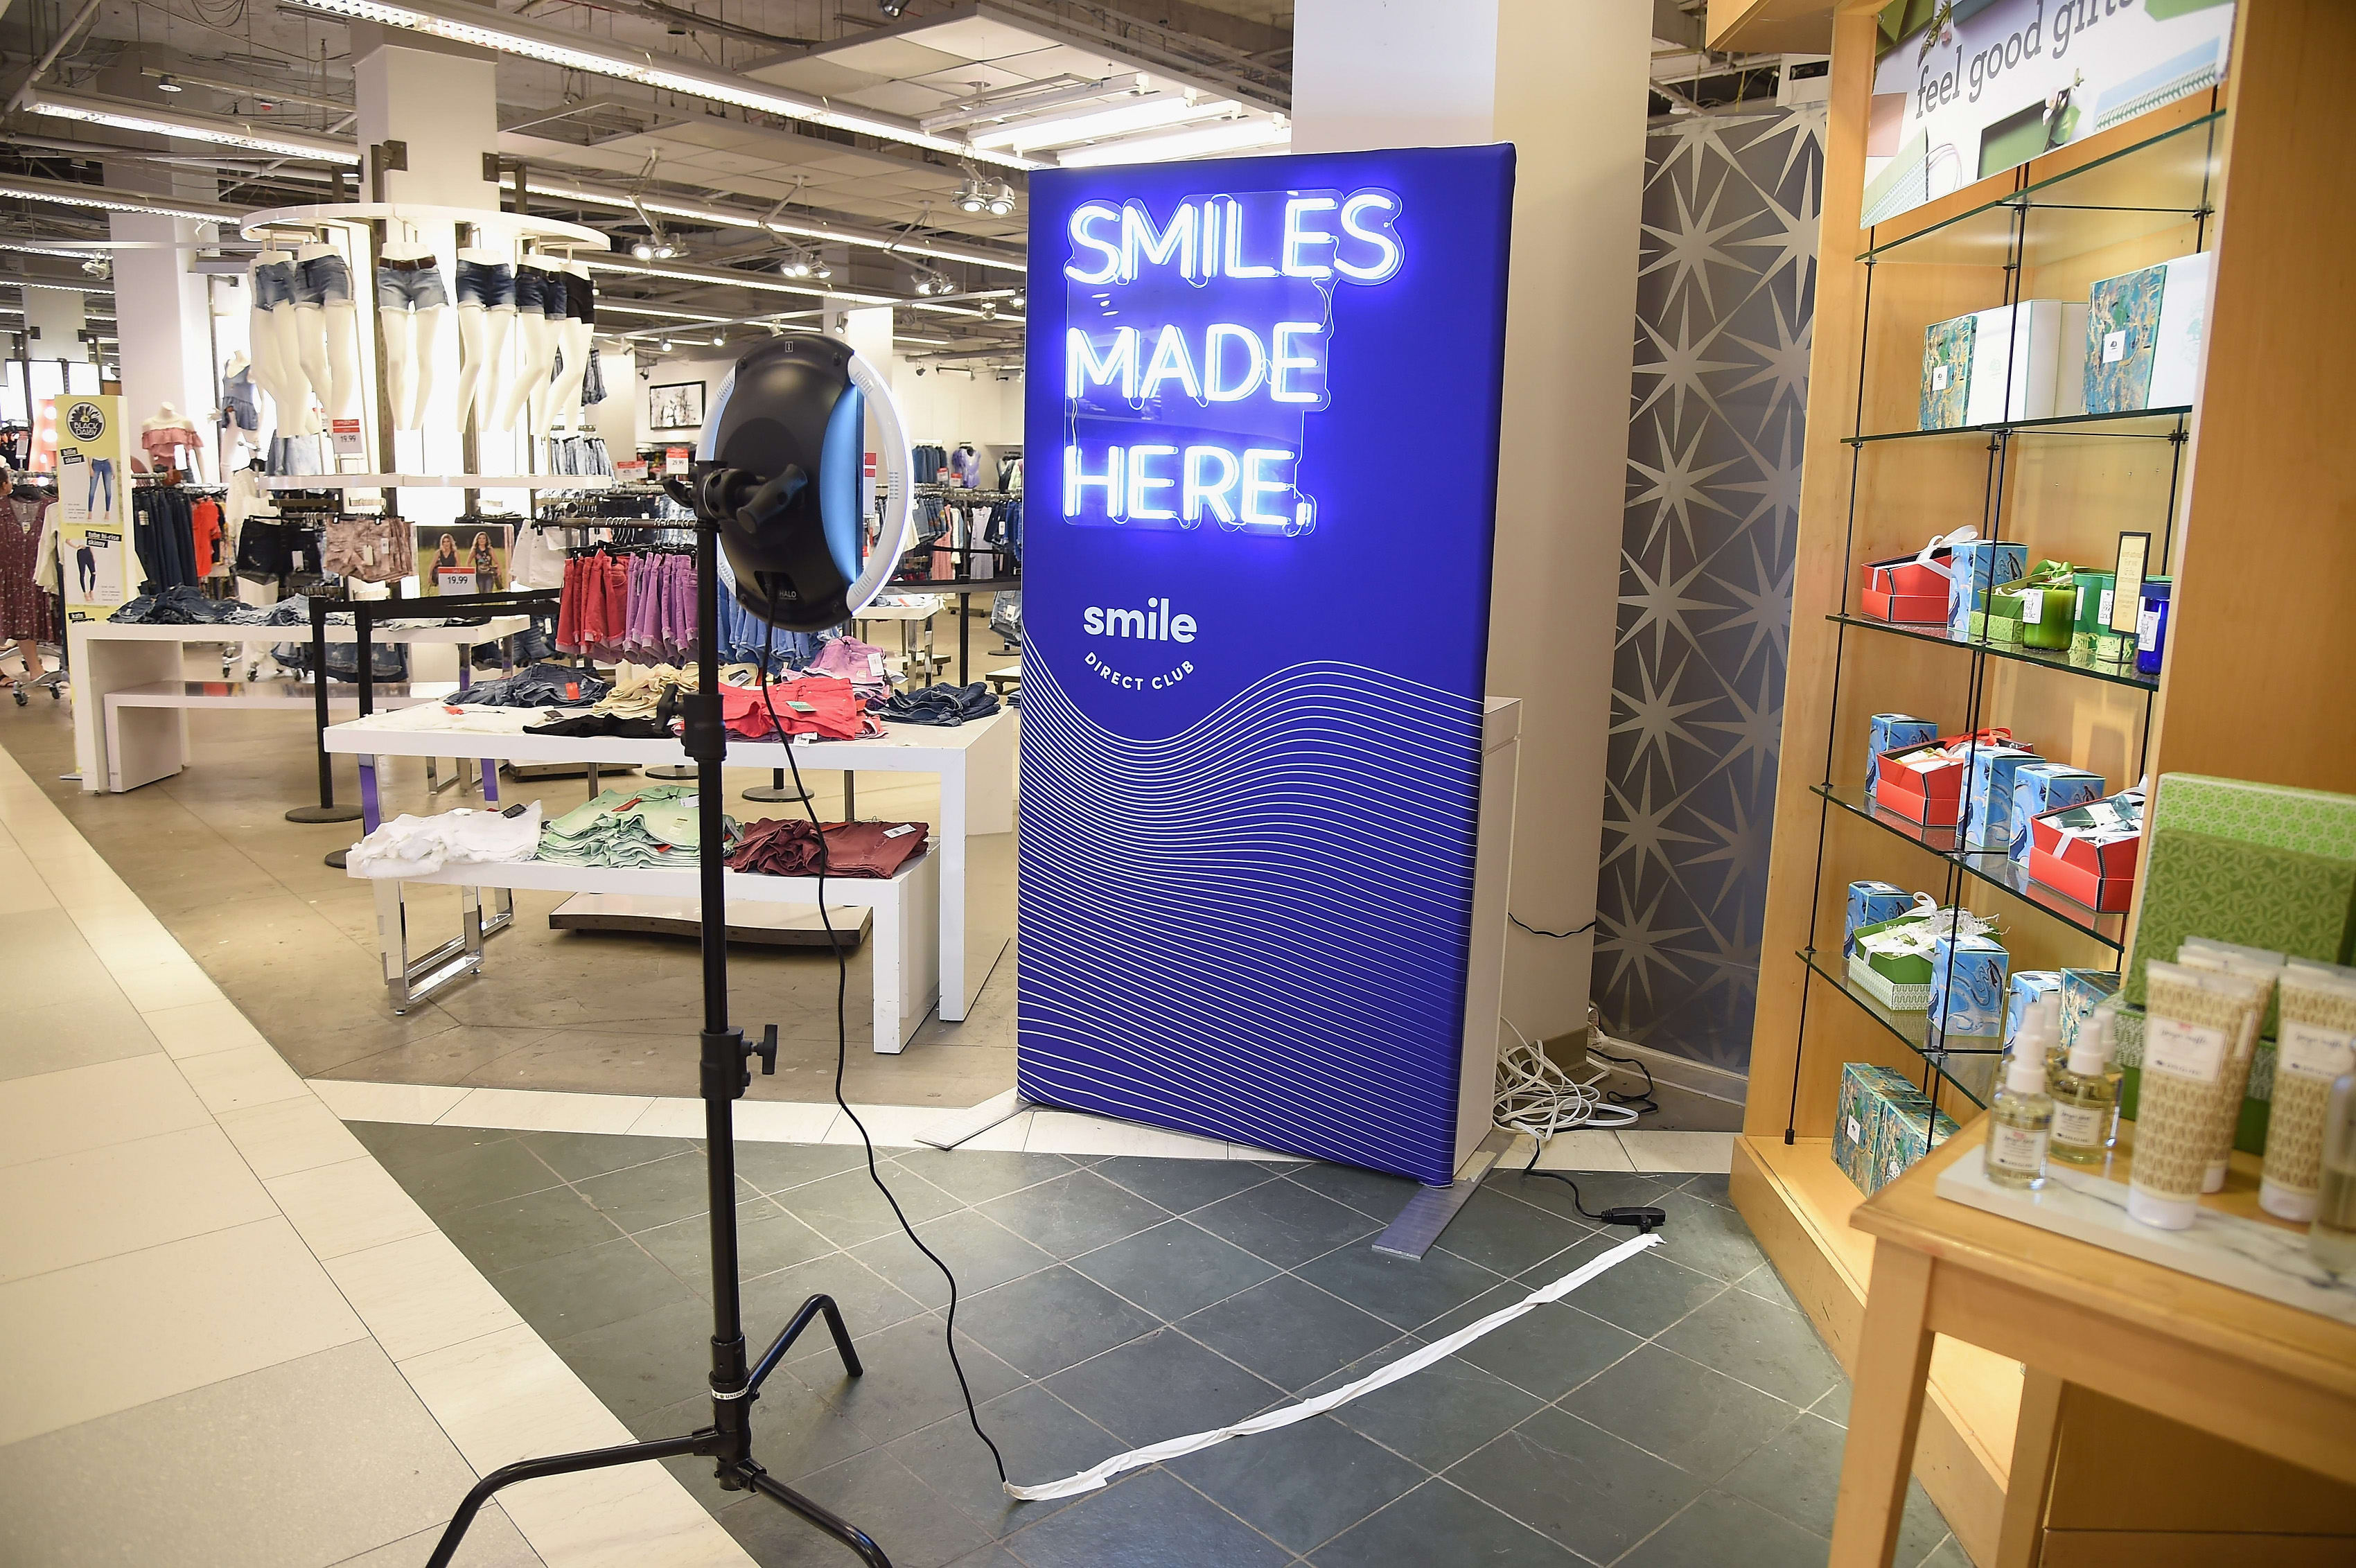 Why Cramer says investing in SmileDirectClub is a difficult decision